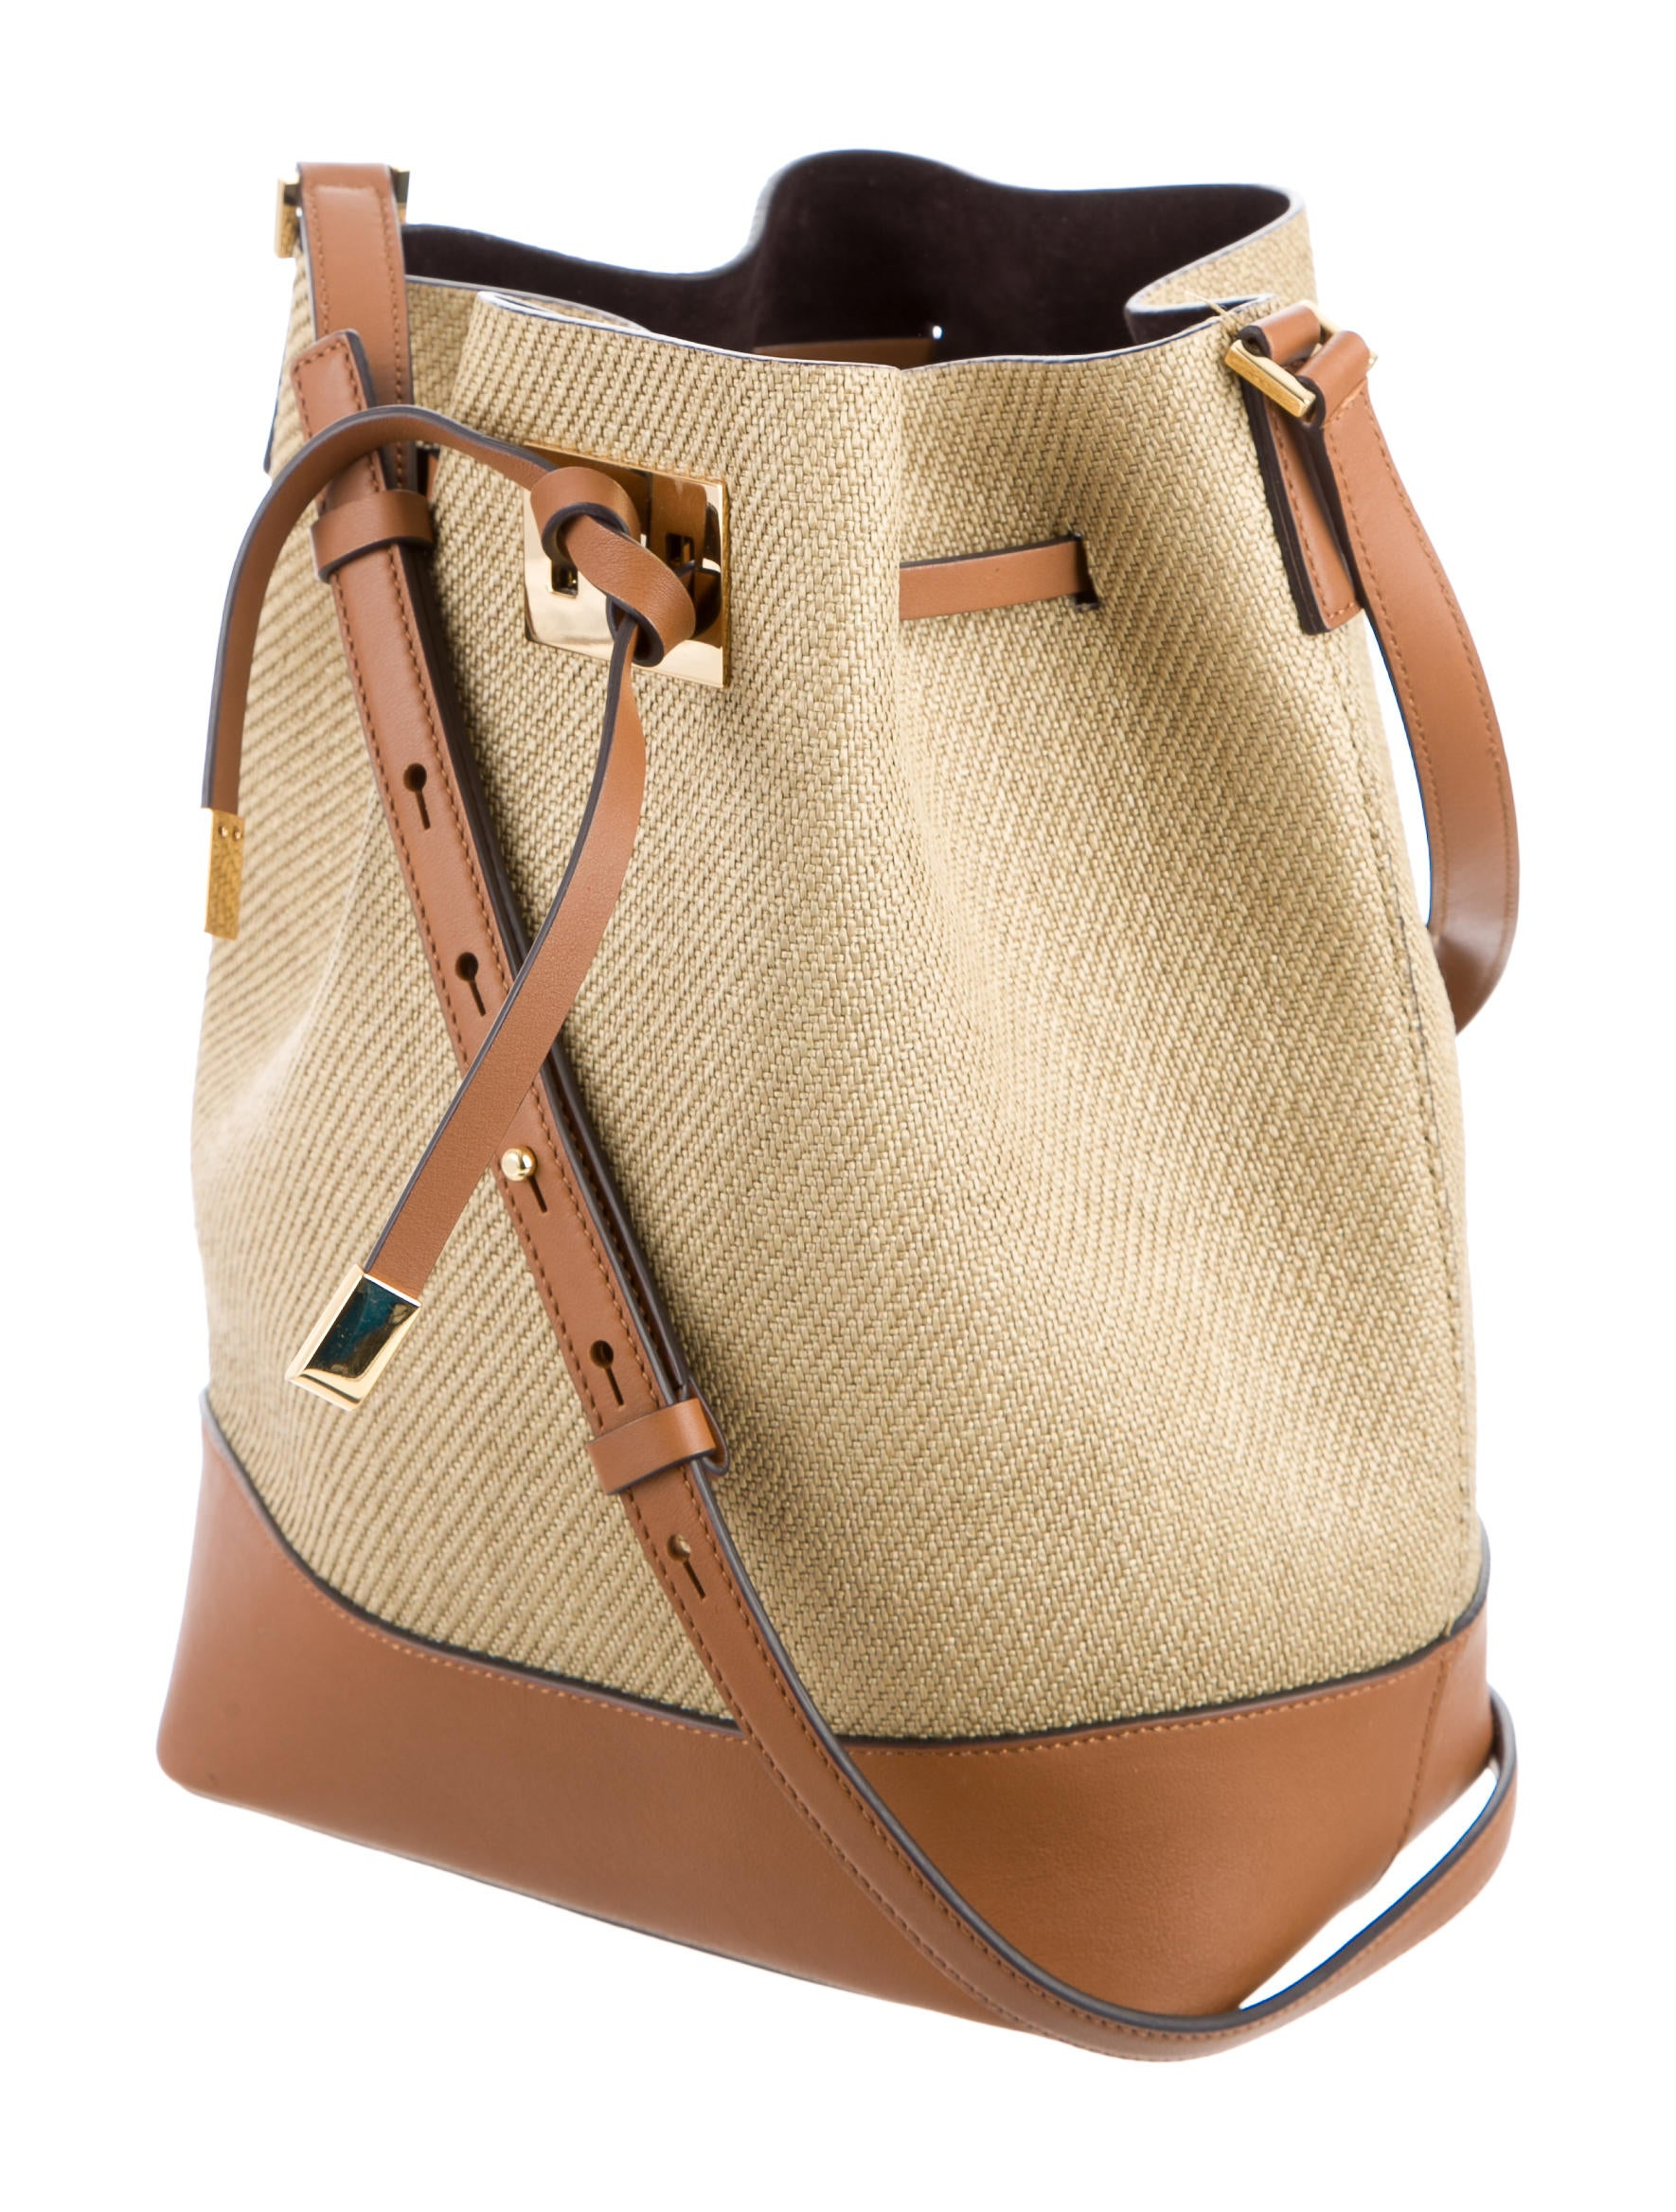 Michael Kors Miranda Straw Bucket Bag on Chocolate Brown Living Room